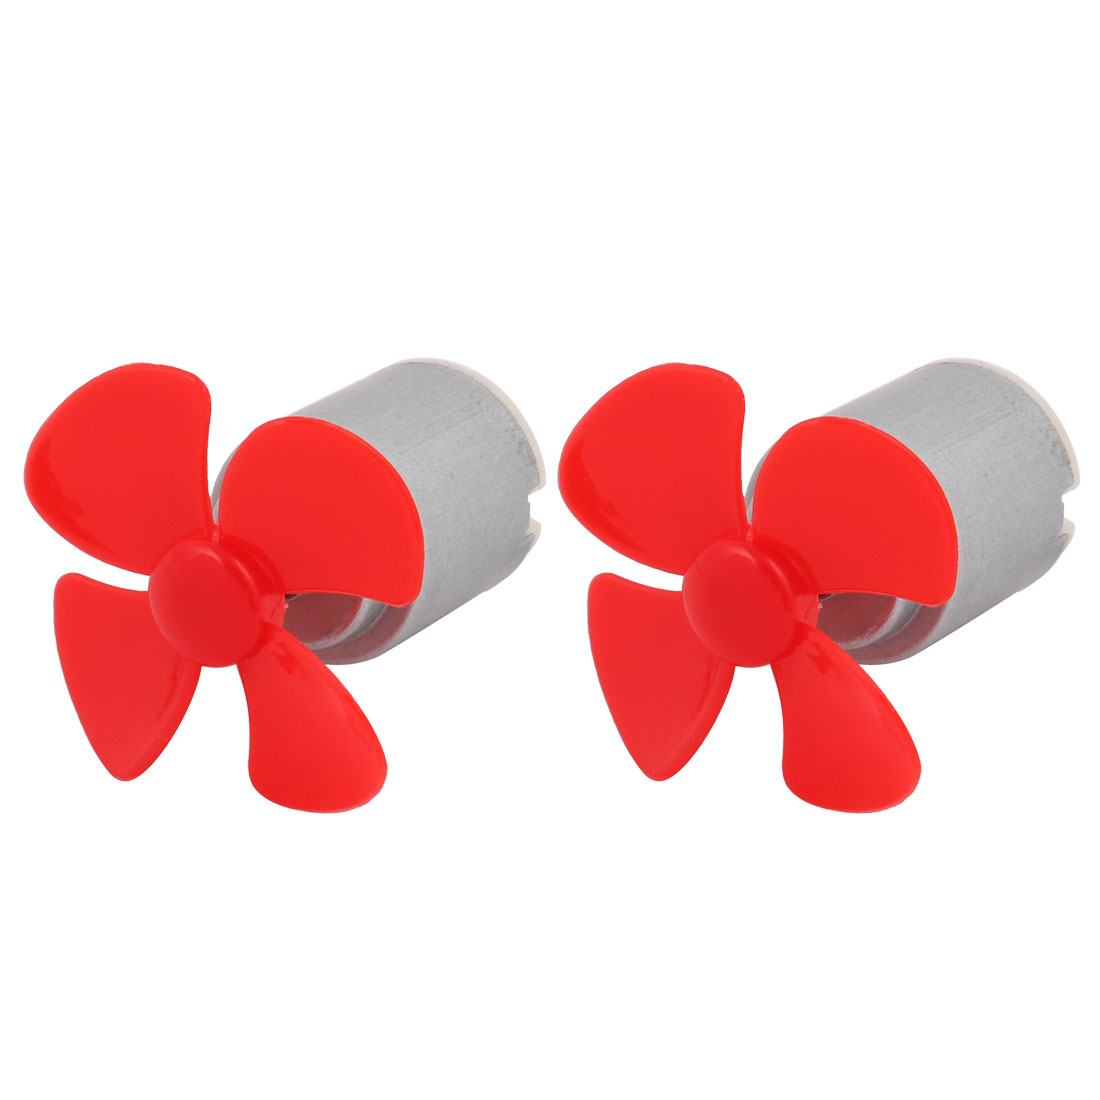 2pcs DC 1.5V 0.13A 3800RPM Strong Force Motor 4 Vanes 40mm Red Propeller for RC Aircraft